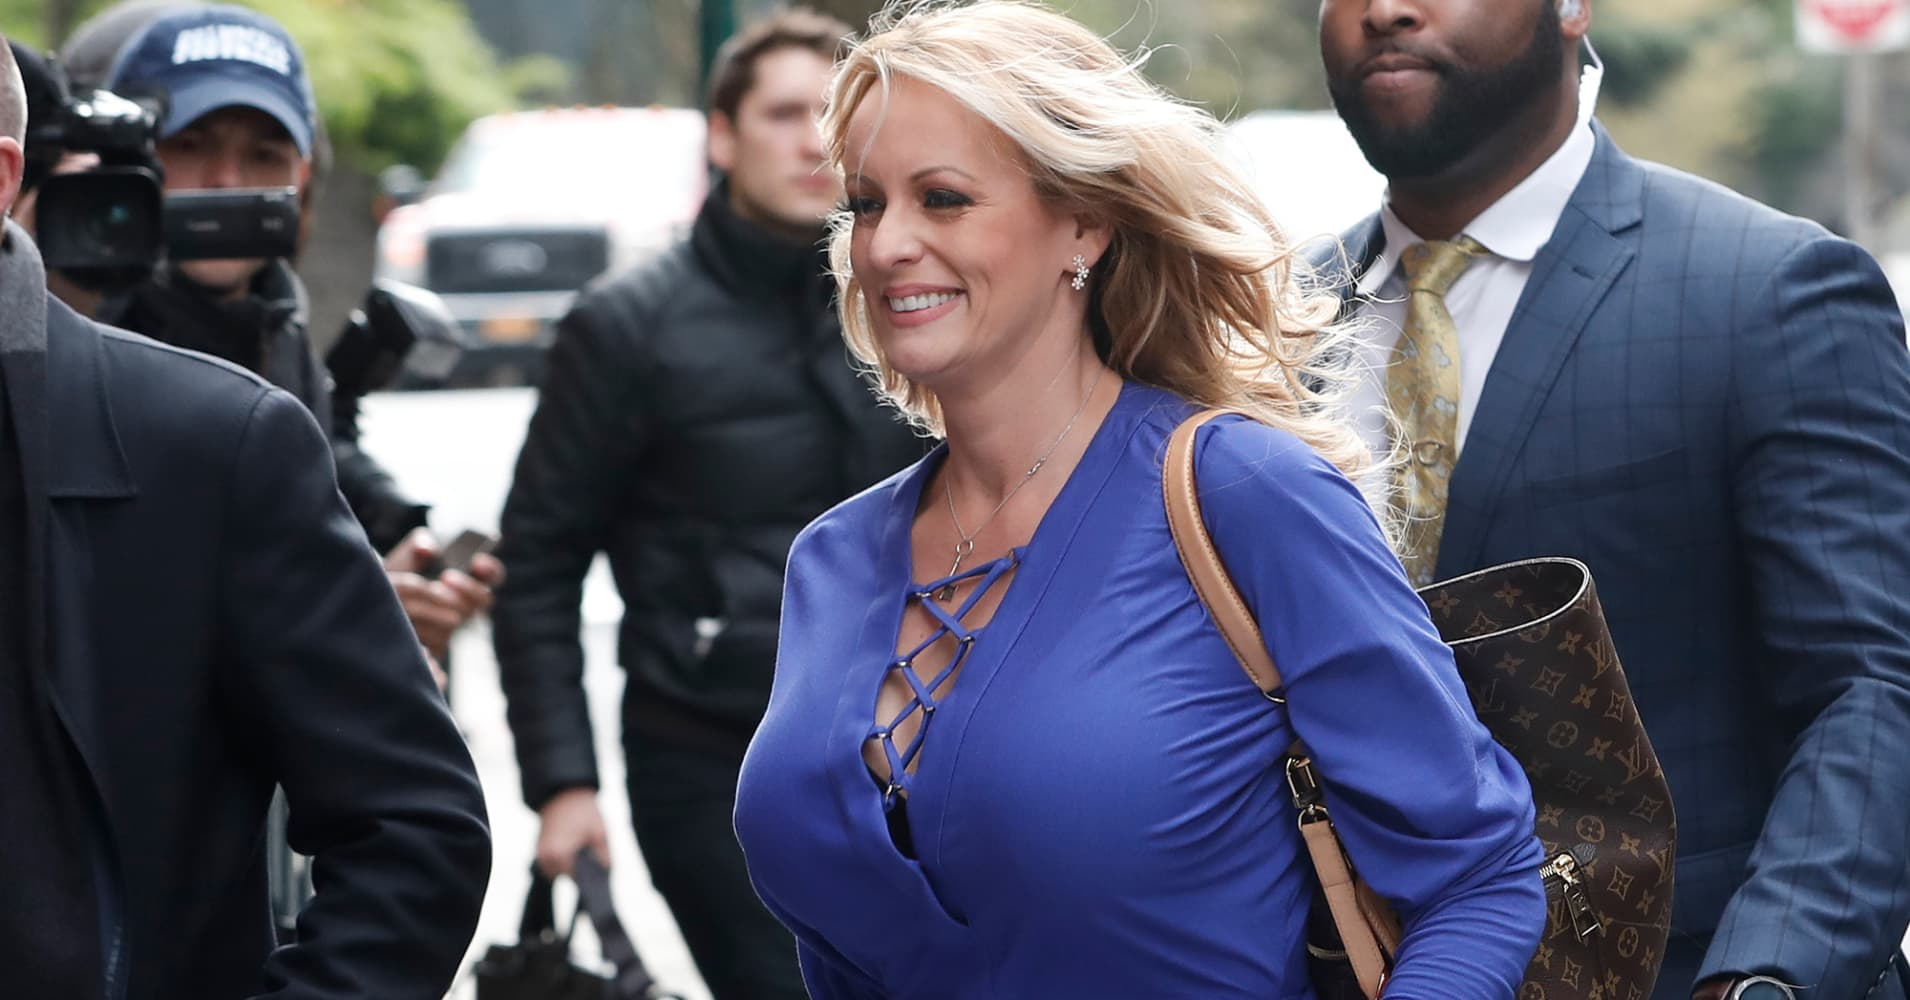 Prosecutors drop criminal case against porn star Stormy Daniels hours after strip-club bust